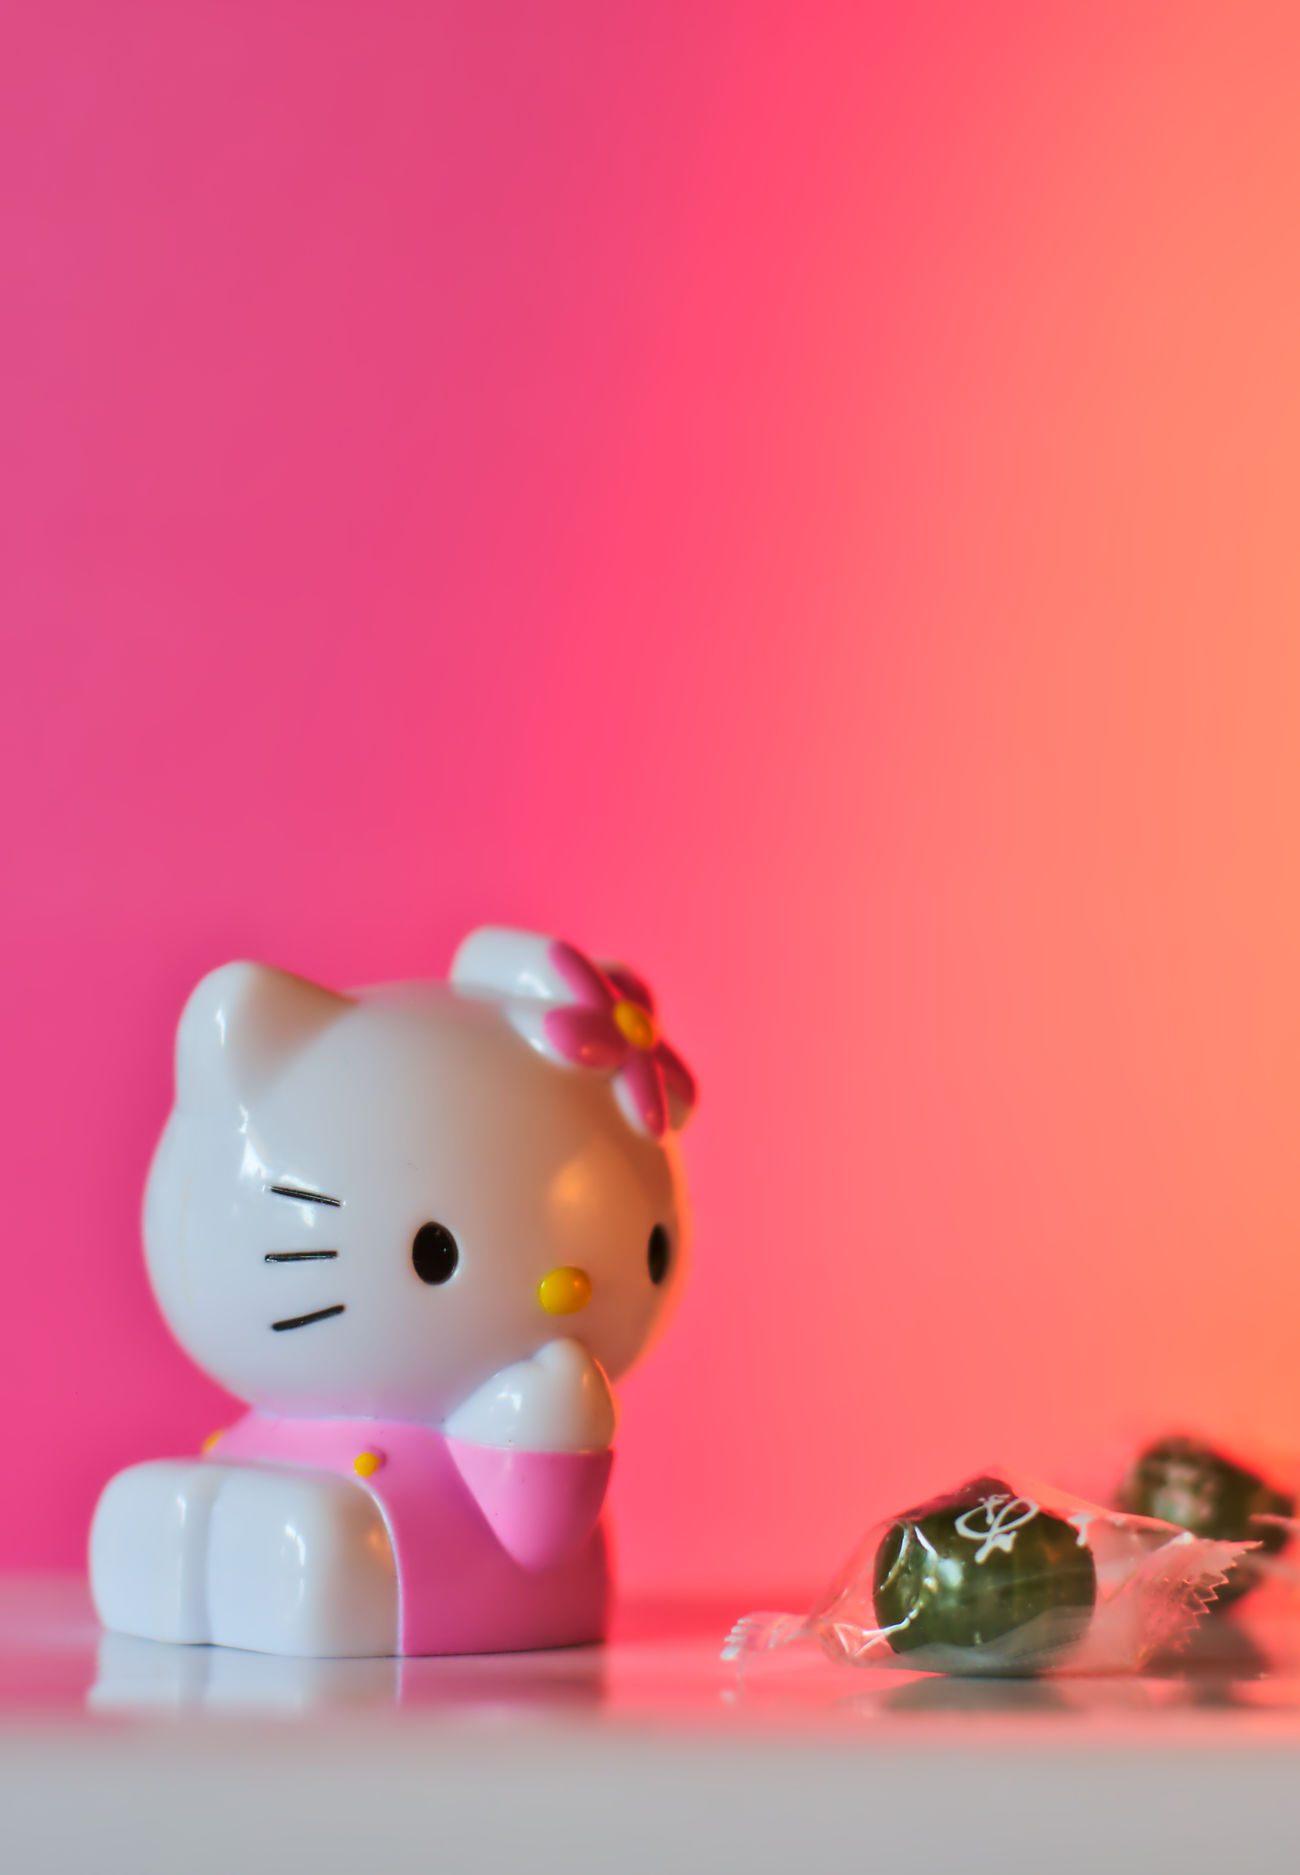 Sweet Hello Kitty Candy Close-up Color Of Life Fantasy Figure Figurine  Focus On Foreground Girly Hello Kitty Japan Light And Shadow Matcha Millennial Pink Nikon Pink Pink Background Pink Color Still Life Photography Studio Shot Sweet Temptation Toy Toy Adventures ハローキティ 抹茶 日本